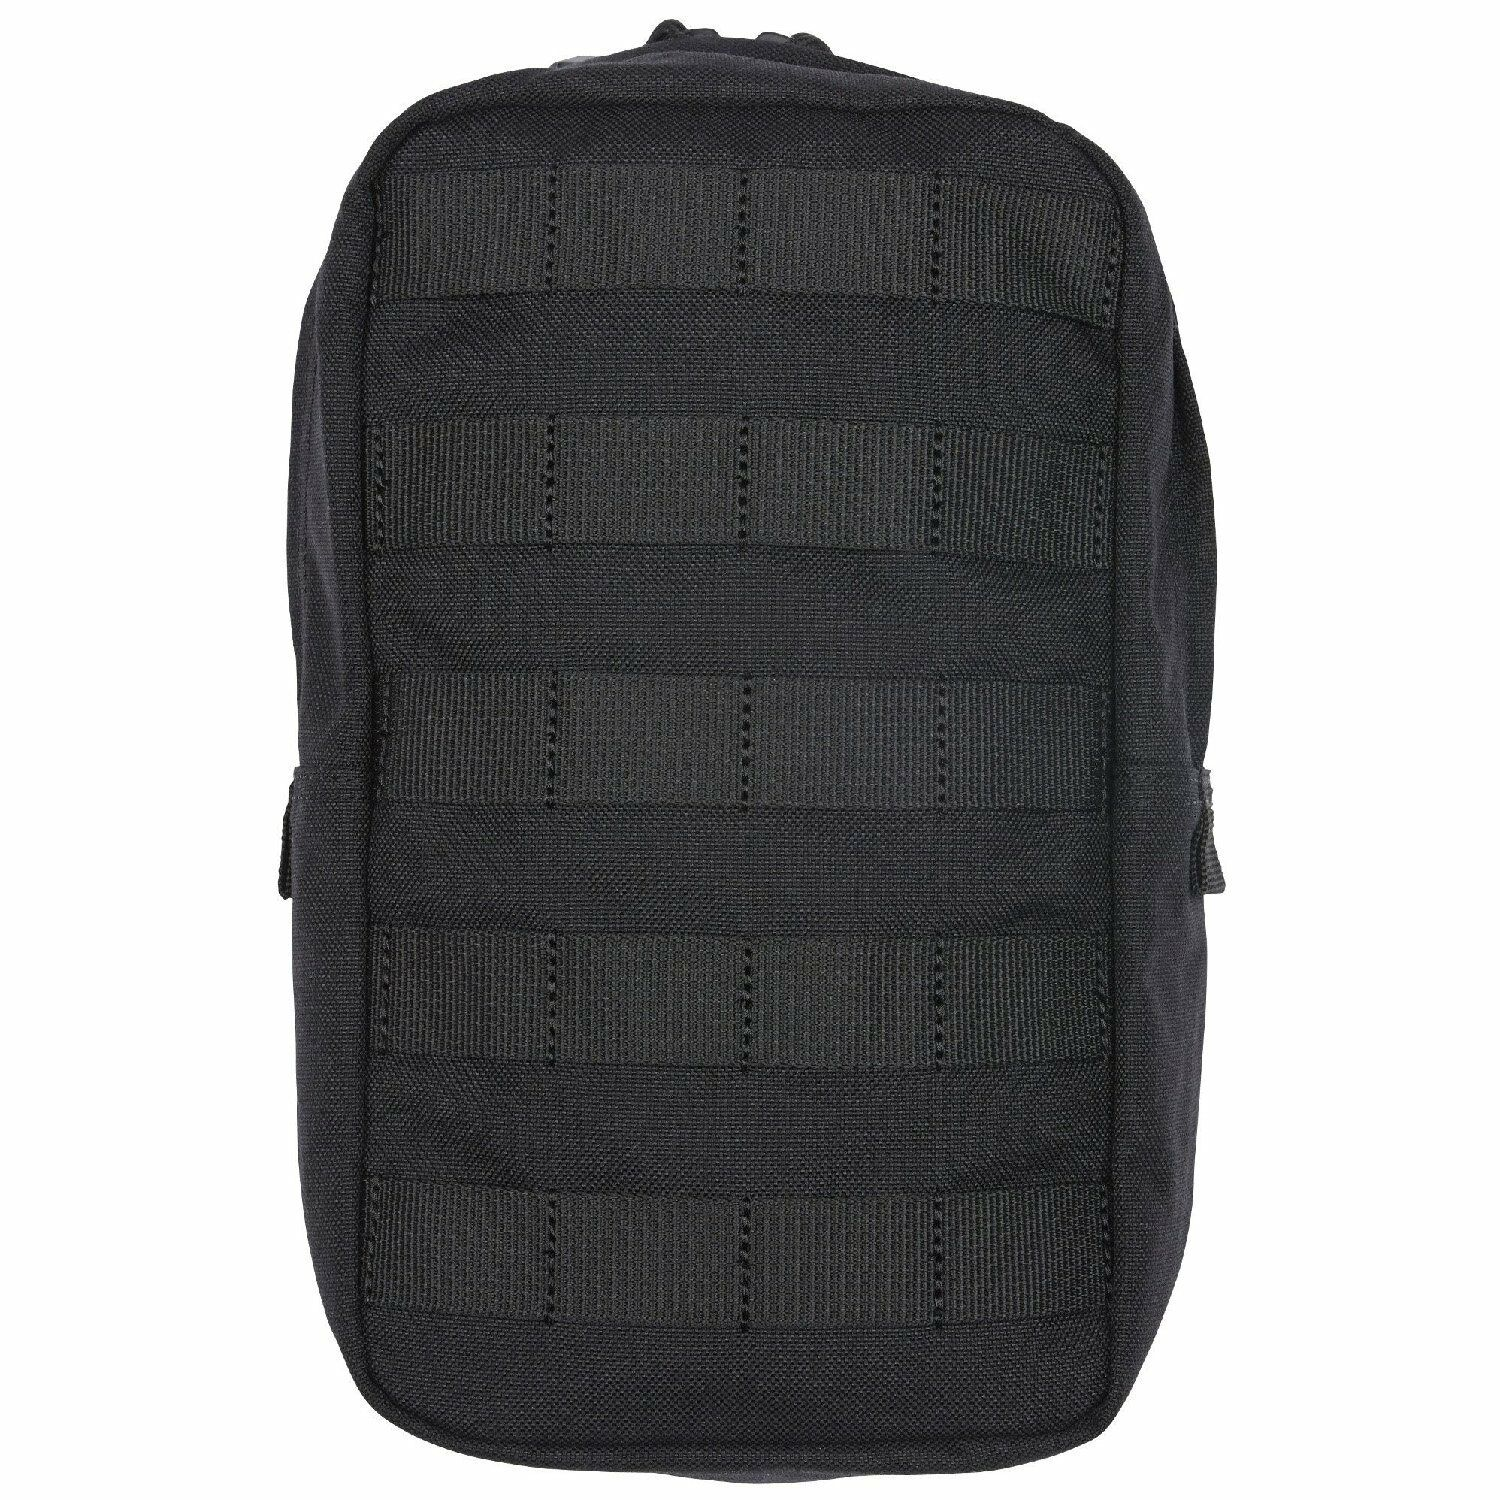 5.11 Tactical 6 X 10 Pouch - Flat Dark Earth One Size